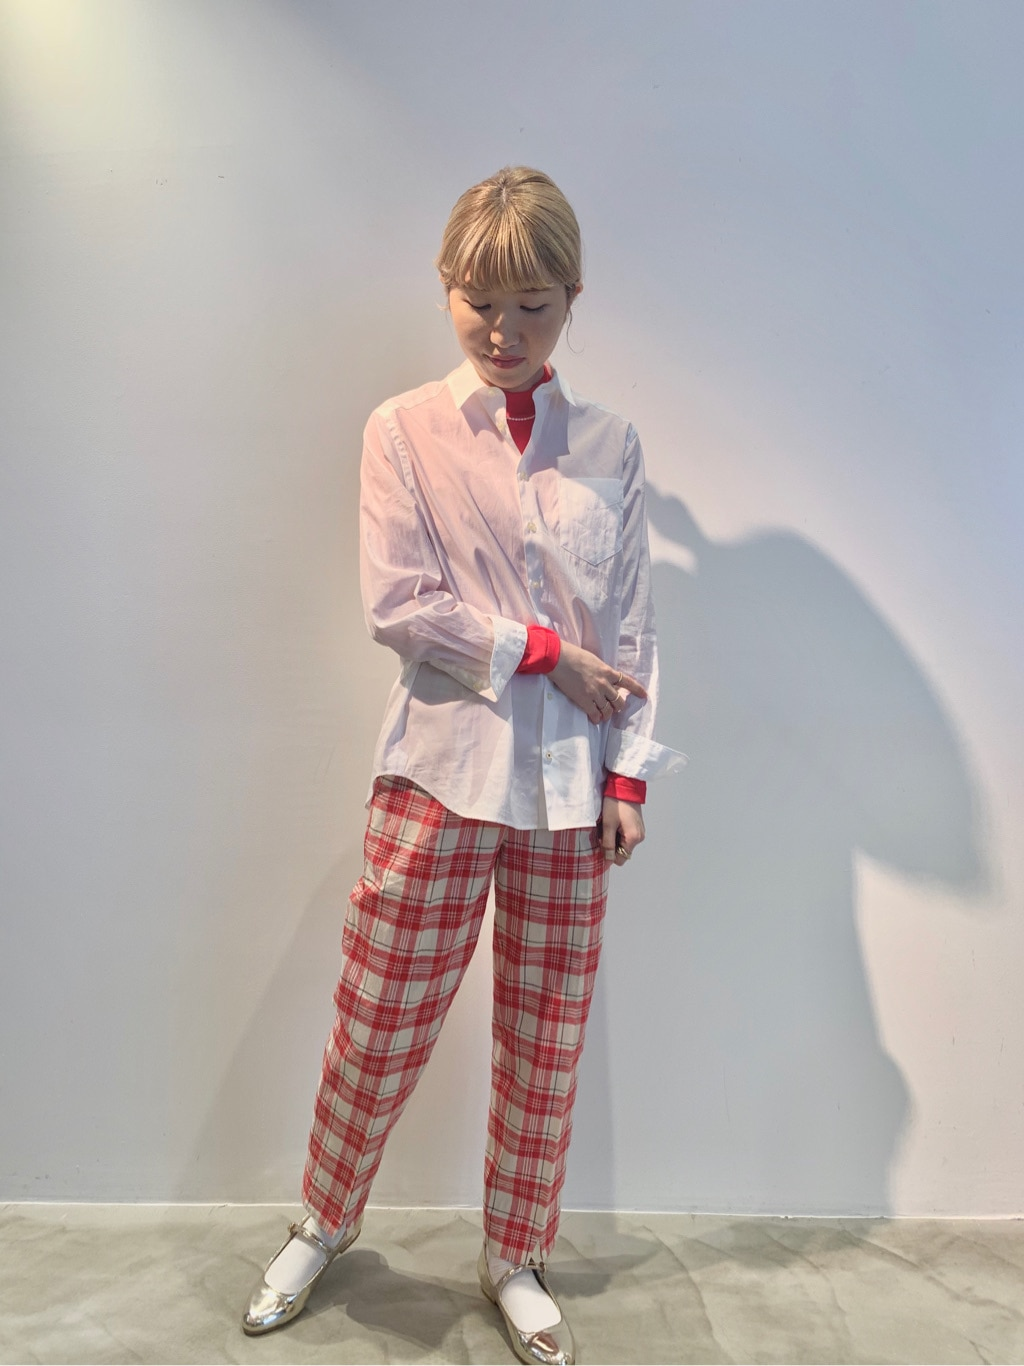 Dot and Stripes CHILD WOMAN ラフォーレ原宿 身長:160cm 2020.04.03